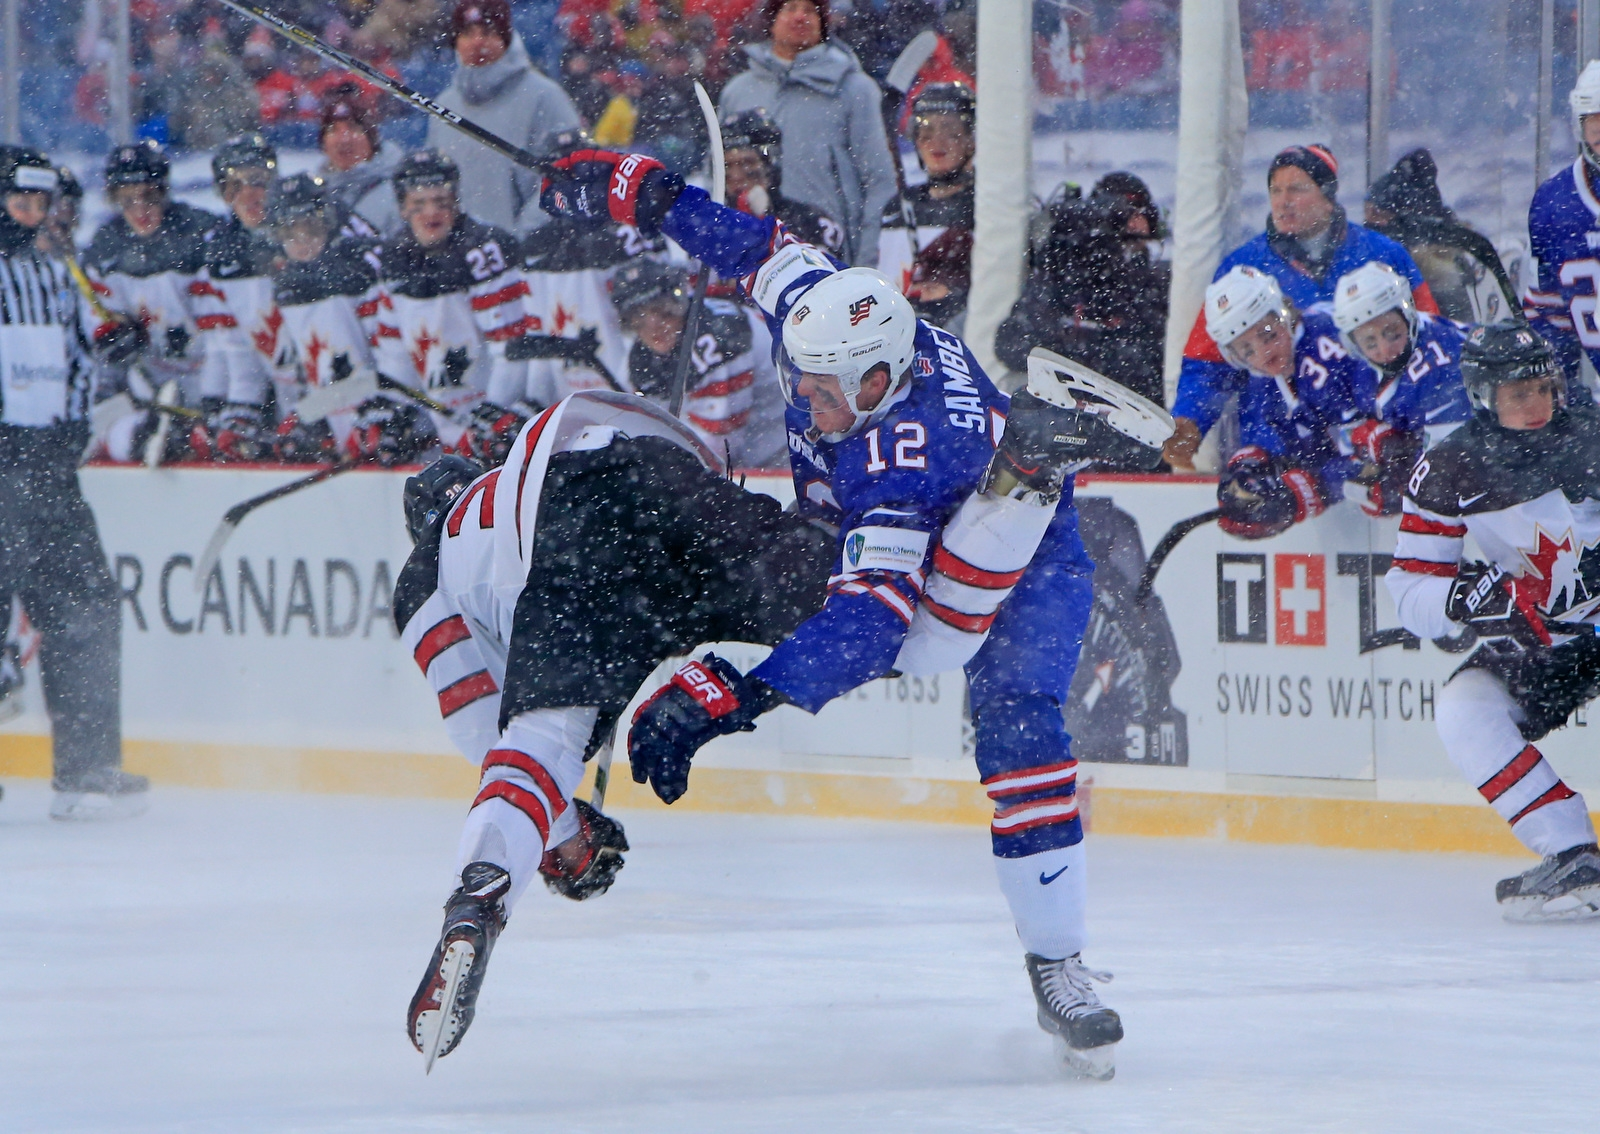 USA defenseman Dylan Samberg checks Canada's Michael McLeod during the first period.